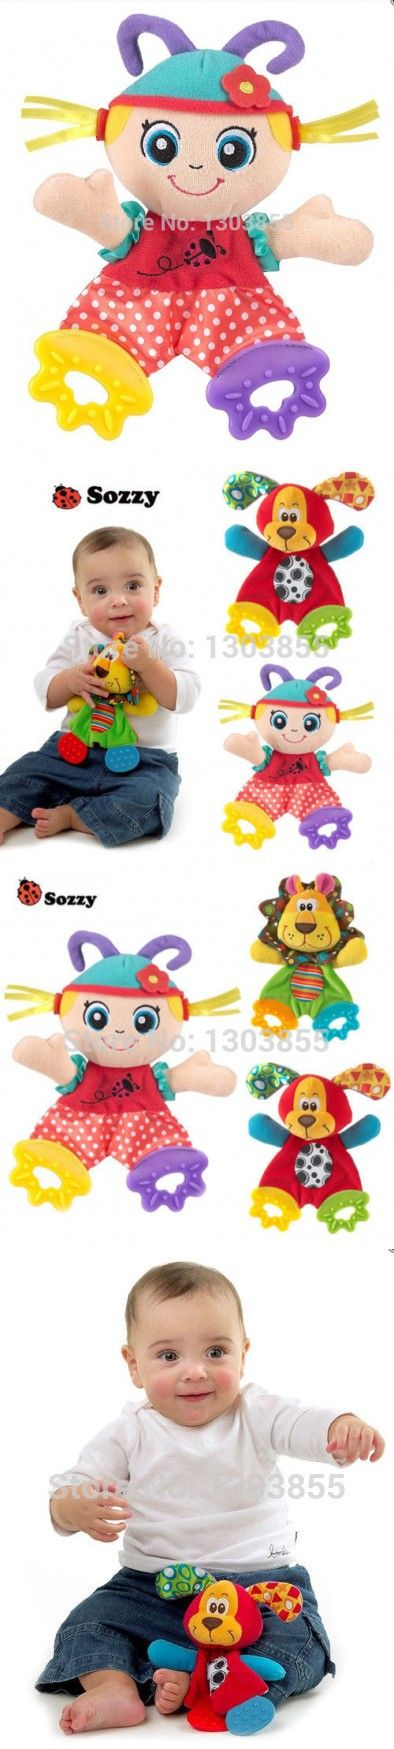 2014 HOT Baby Infant Soft Appease Toys Towel Playmate Calm Doll Teether Developmental Toy LITTLE GIRL